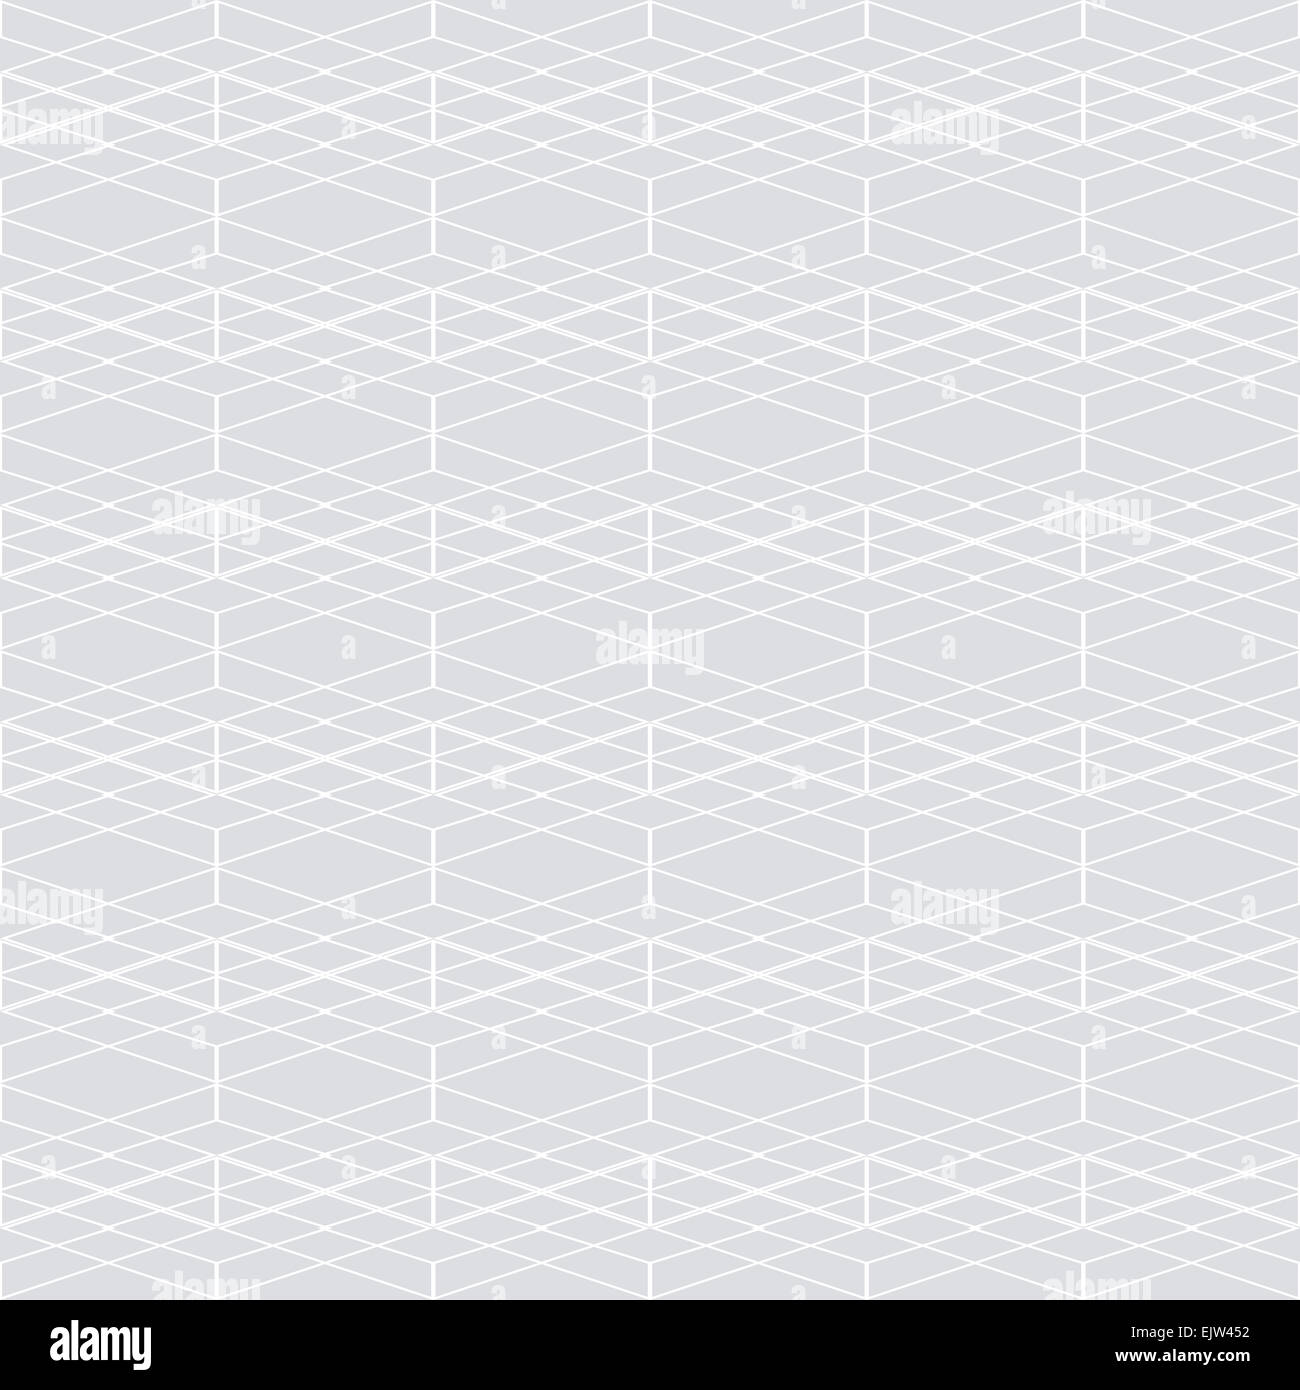 Seamless symmetrical geometric shapes, triangle, lozenge vector textile backdrop. Can be used as fabric pattern. - Stock Image